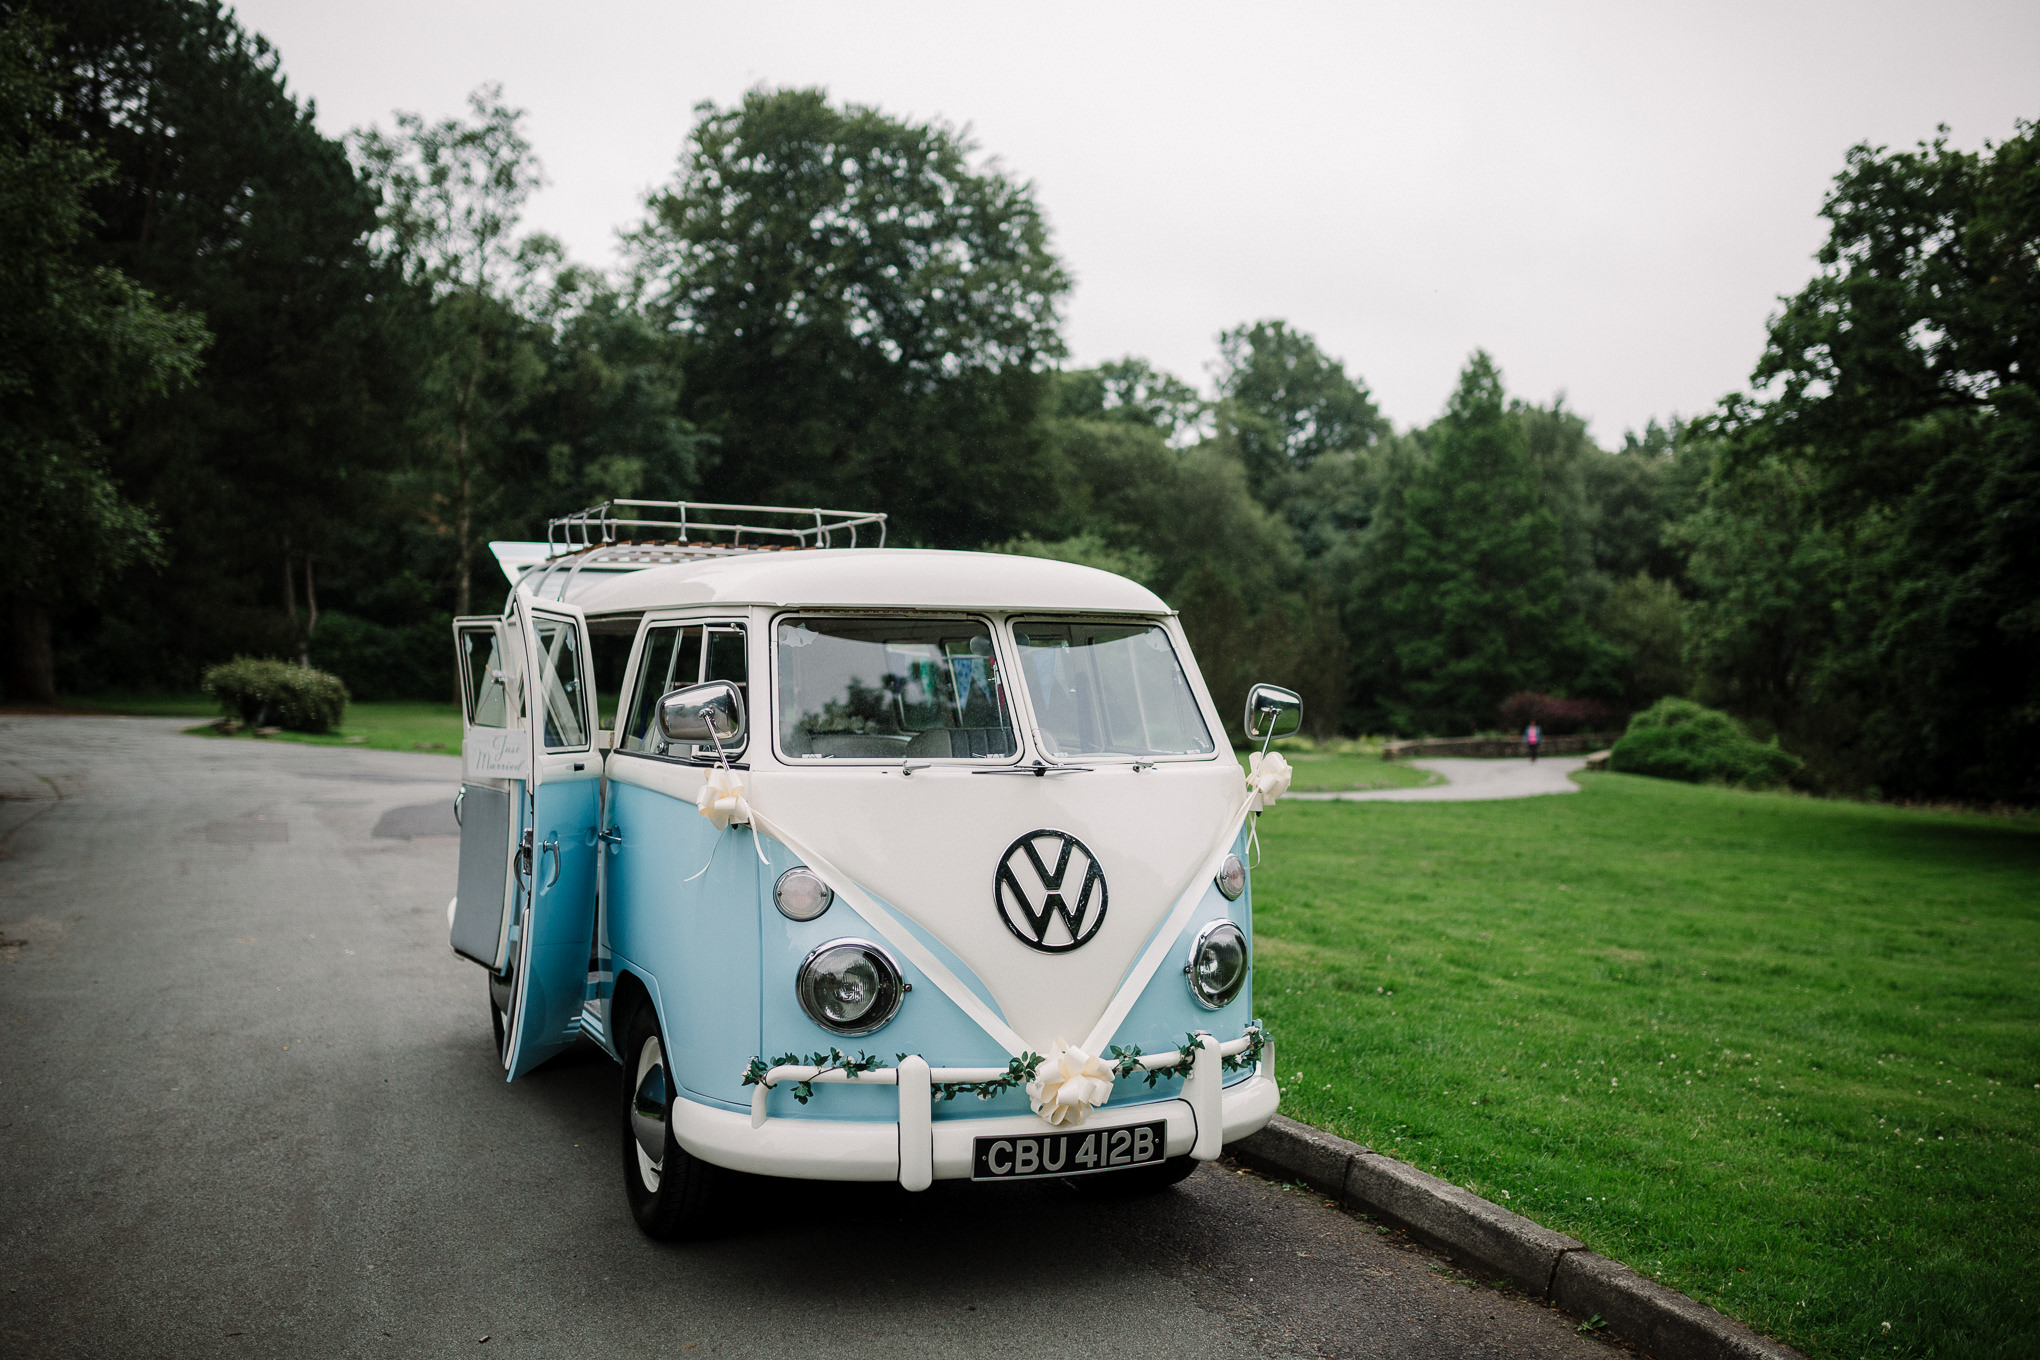 Photograph of the Volts Wagon Campervan